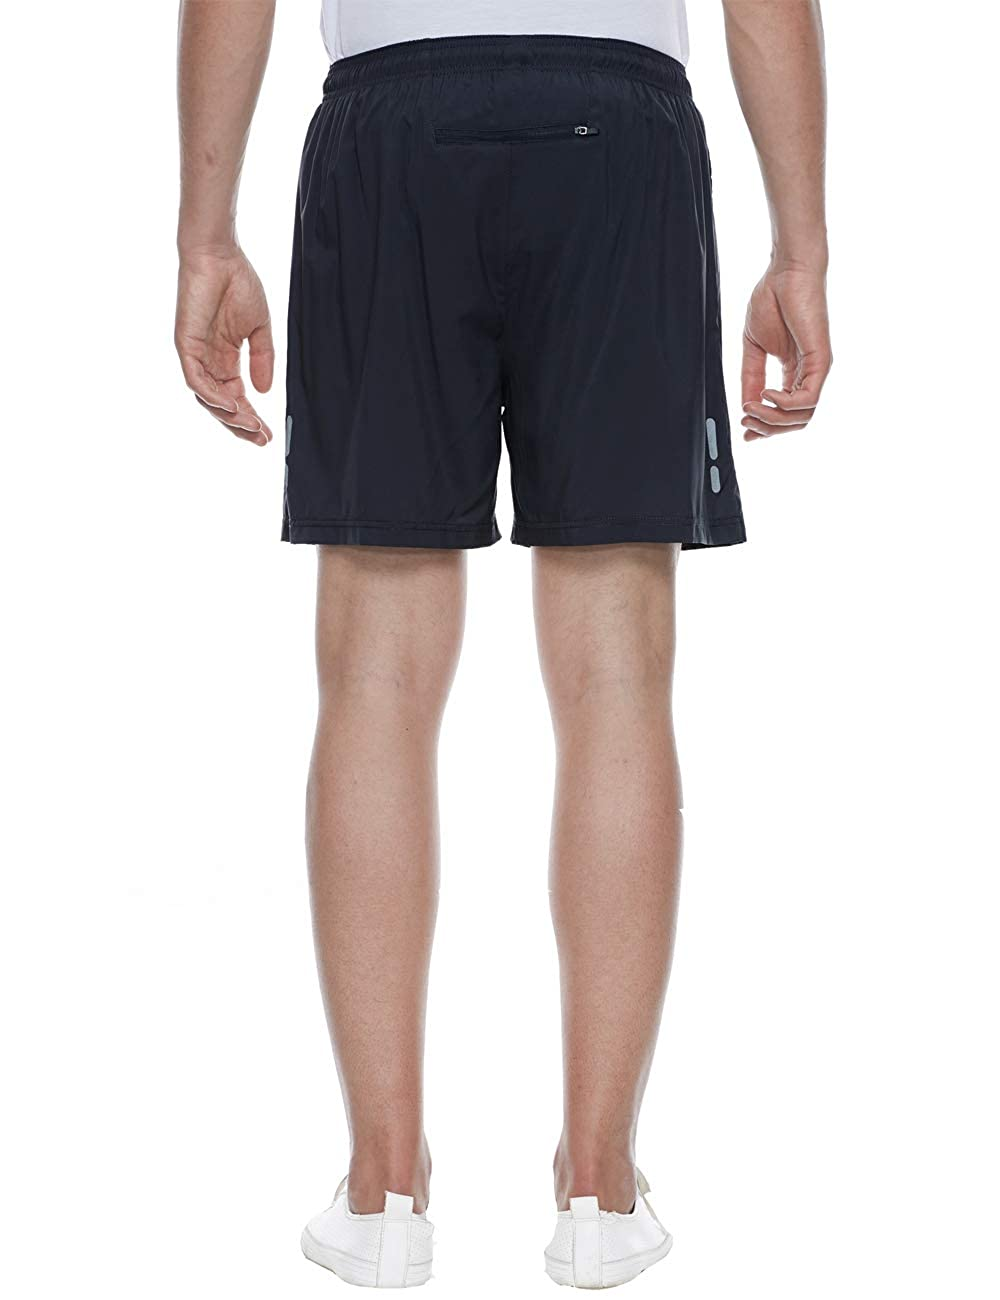 TOPSUN Men 7 Lightweight Quick Dry Running Workout Shorts with Zipper Pockets for Athletic Gym